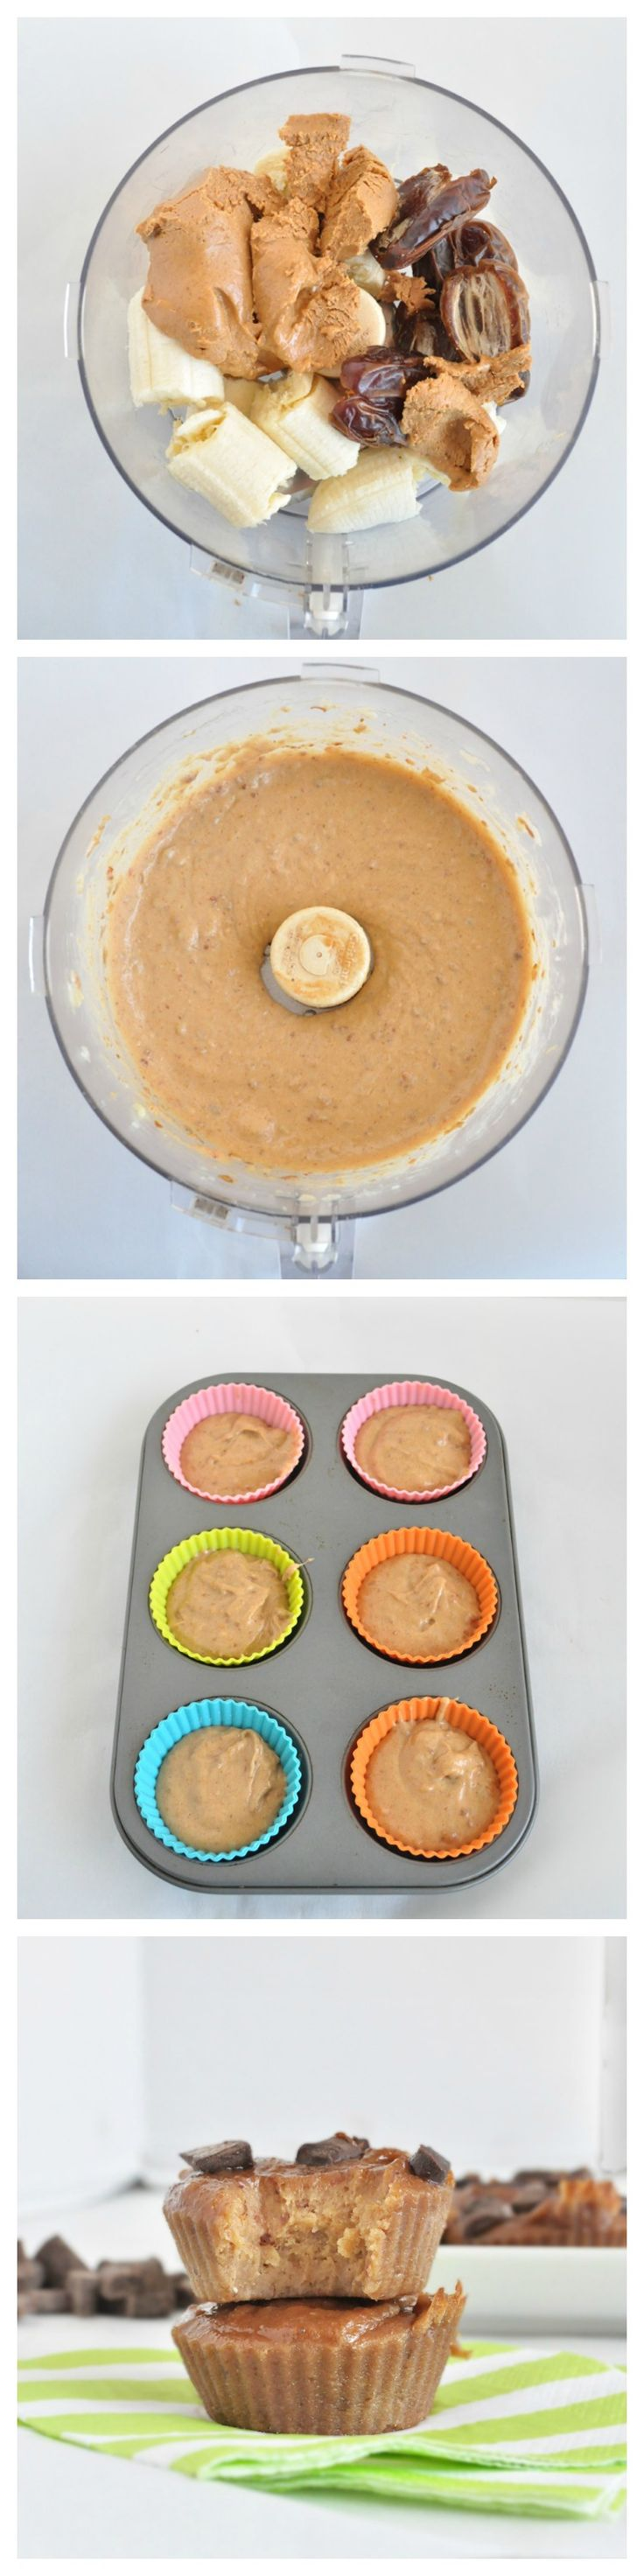 Flourless Peanut Butter Muffins.  NO flour and NO added sugar.  All you need is 3 ingredients! #vegan #glutenfree #grainfree #healthyrecipe